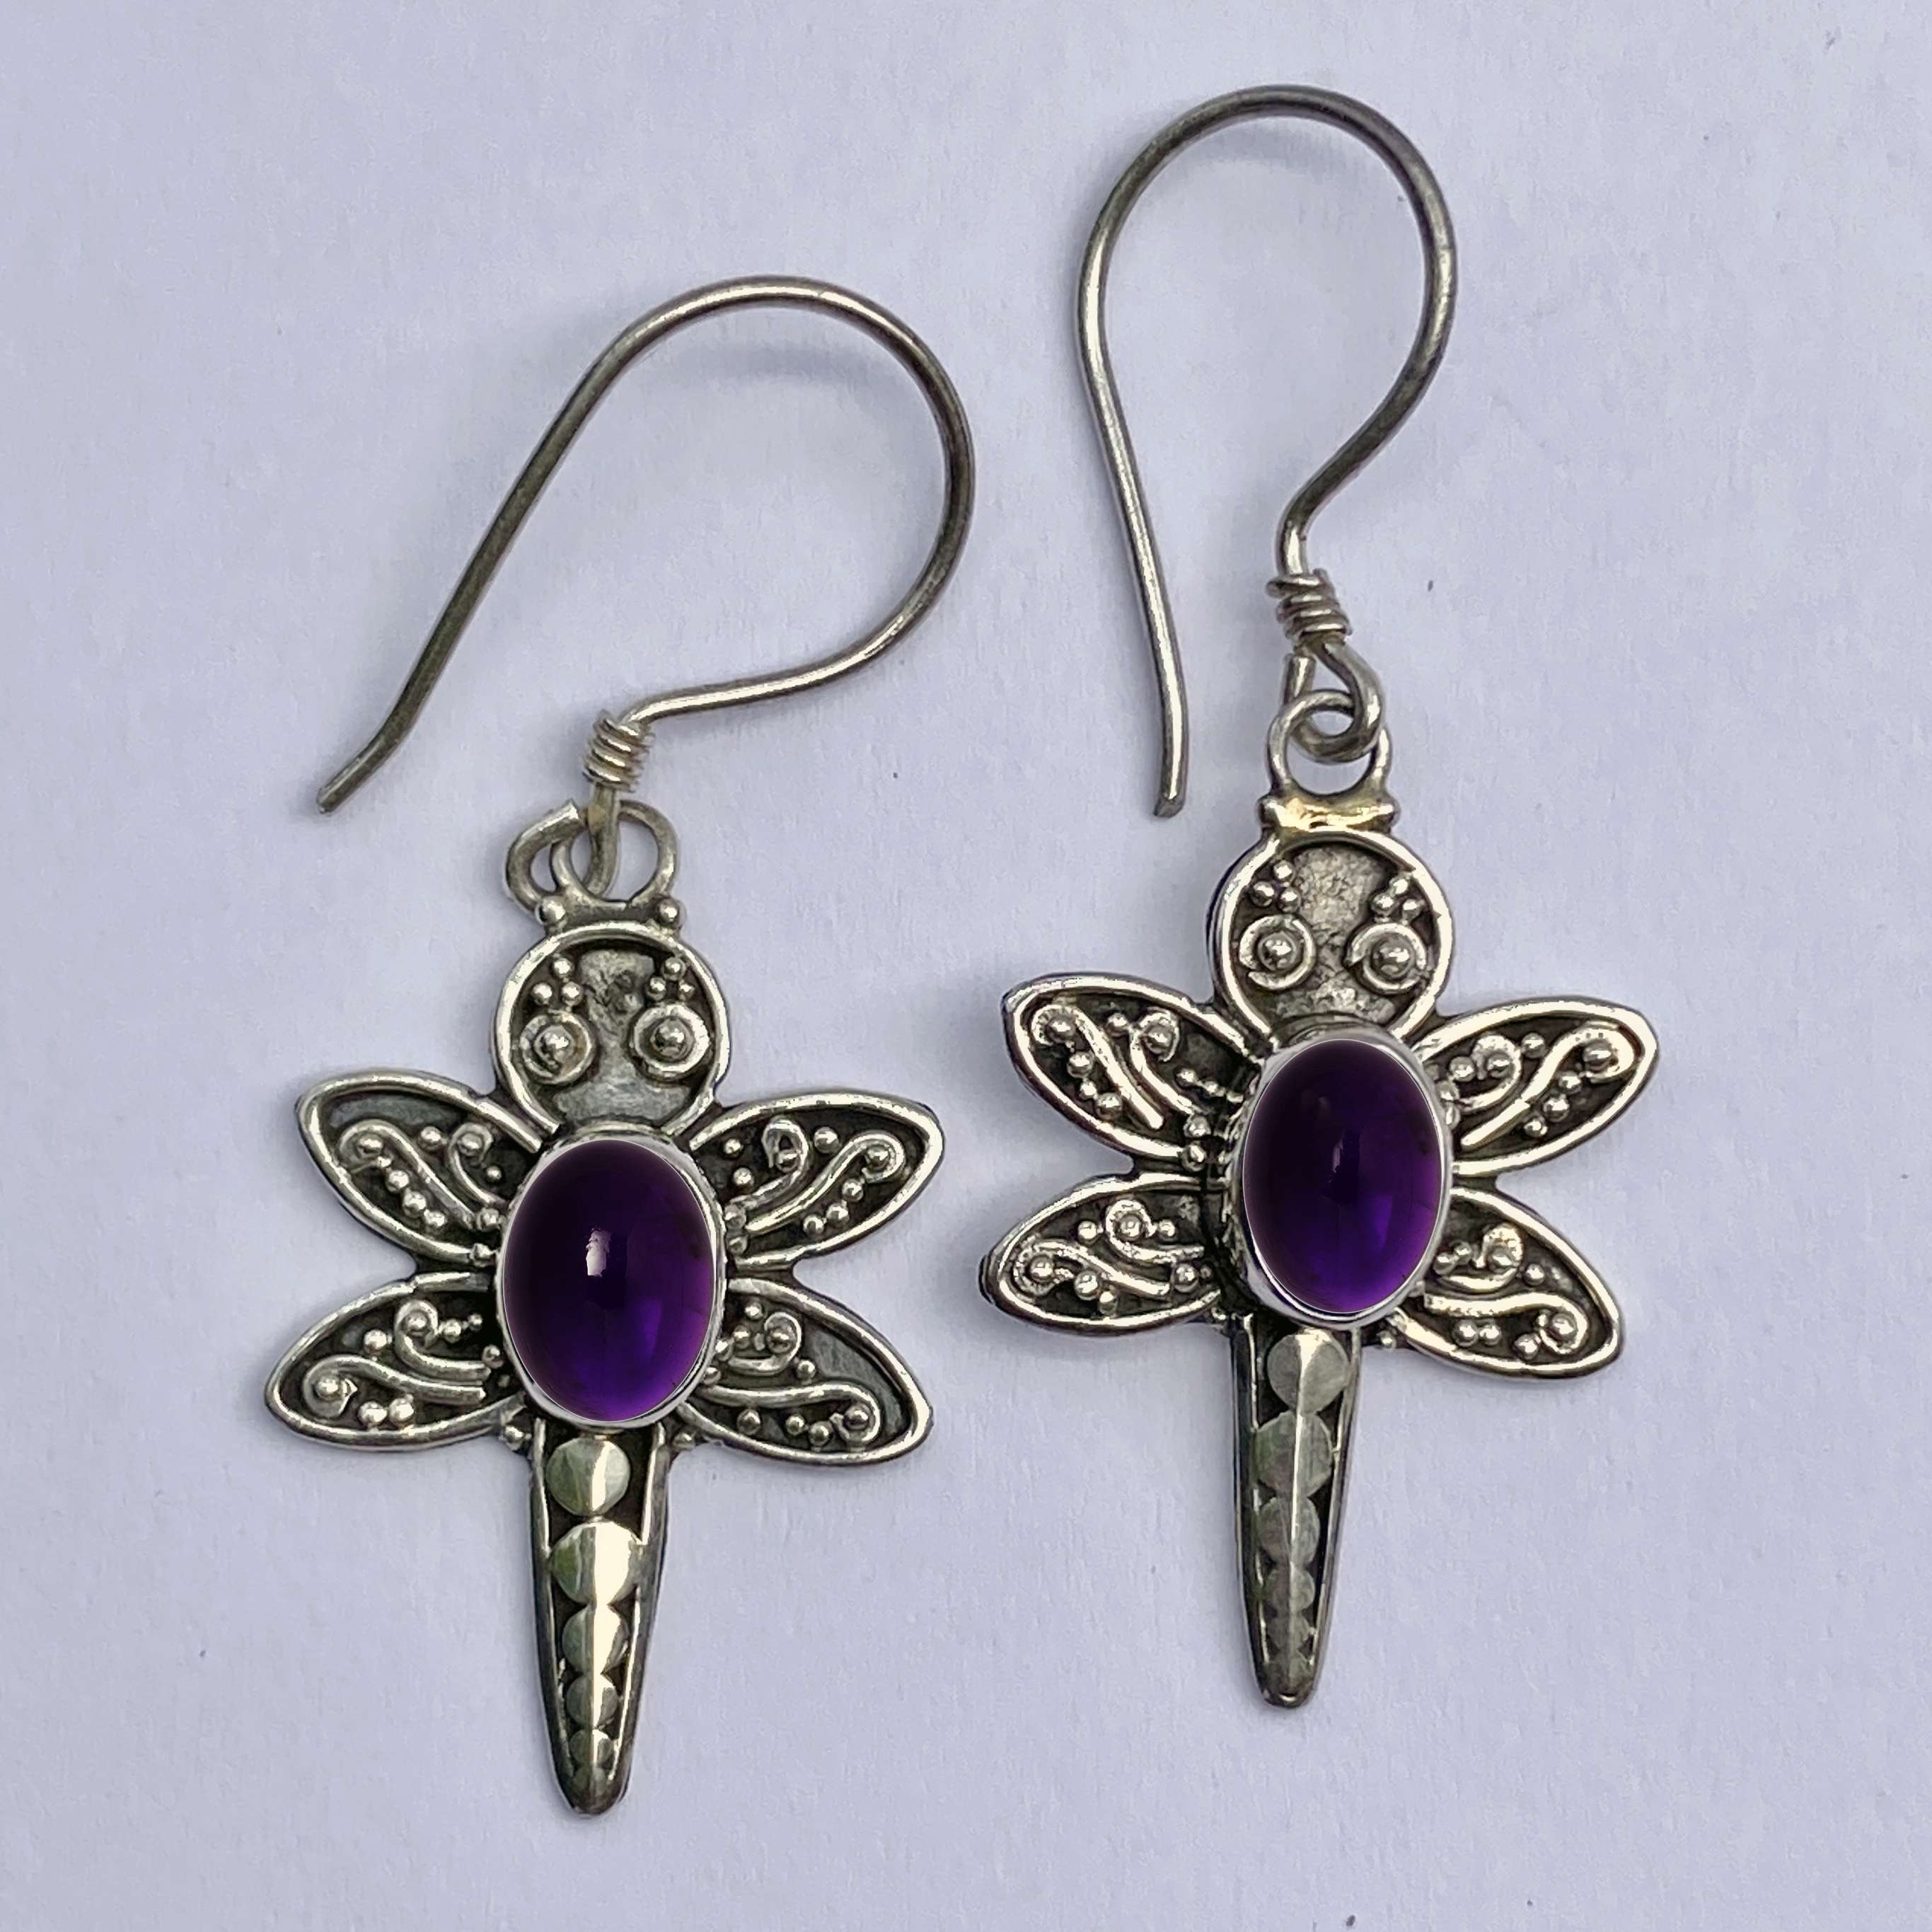 (BALI 925 STERLING SILVER DRAGONFLY EARRINGS WITH AMETHYST)